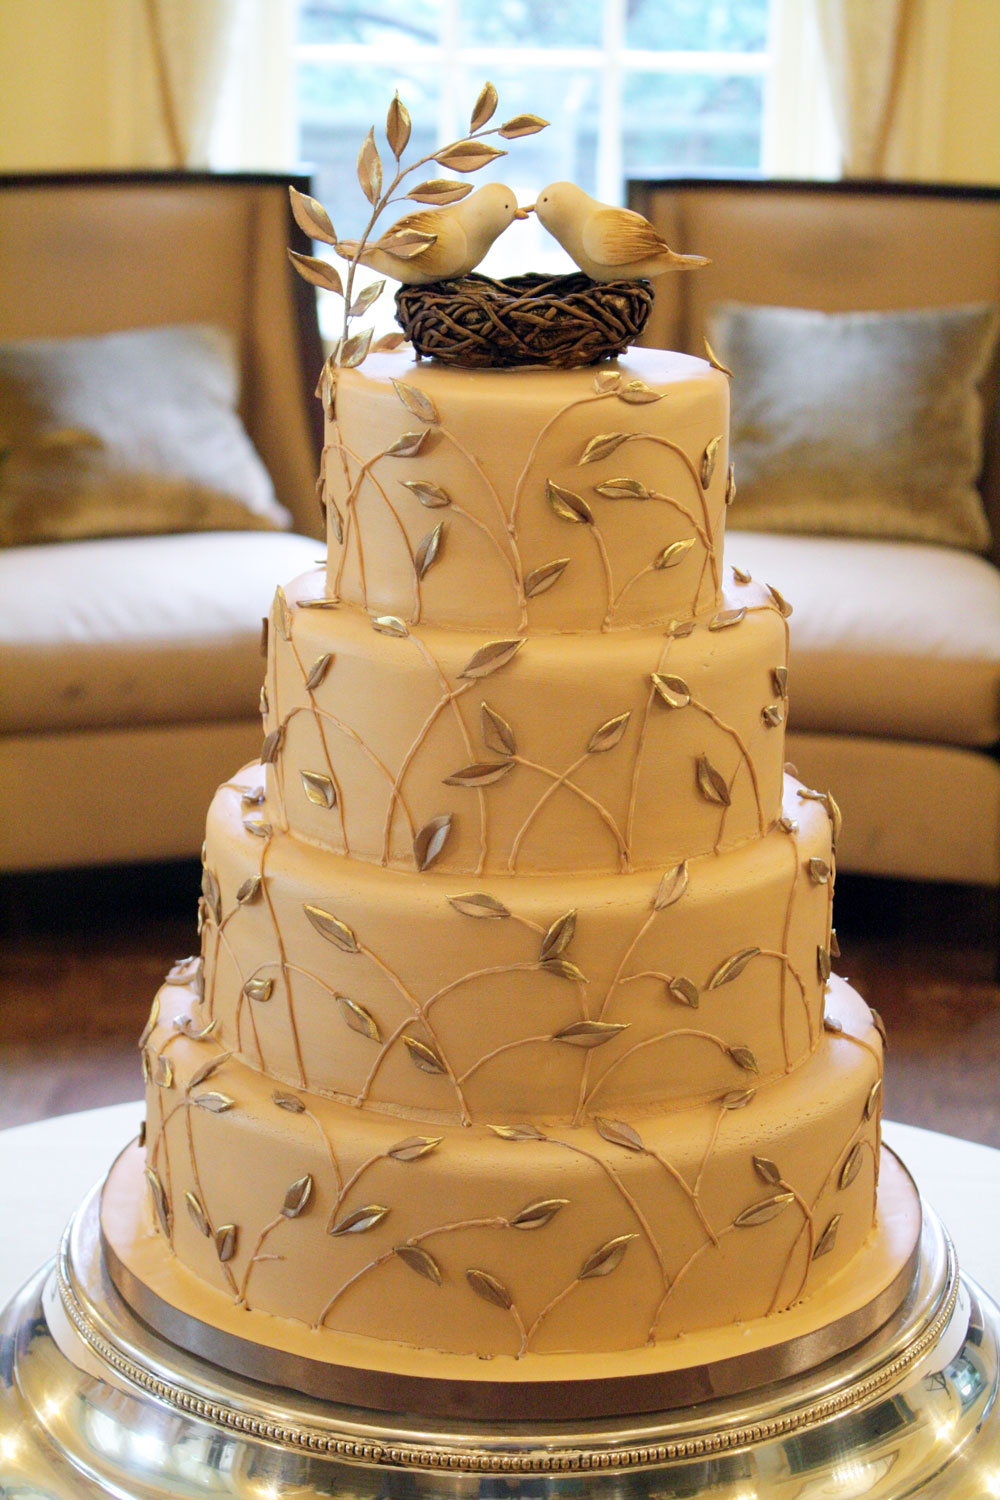 Let Them Eat Cake (At Your Wedding): Love Birds Top This Cake